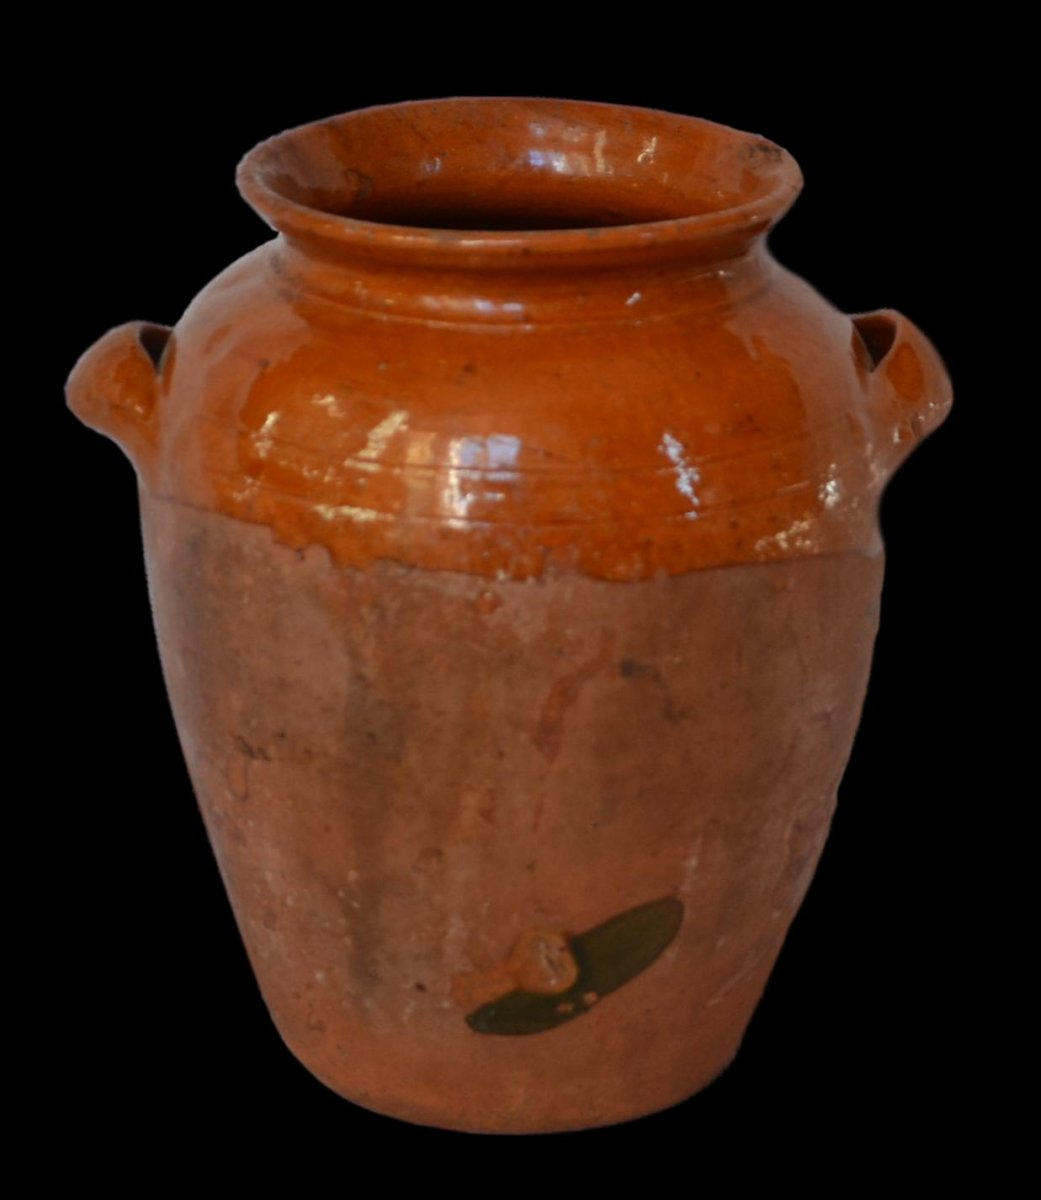 Large Olive Pot, Provence, France, XIXth Century